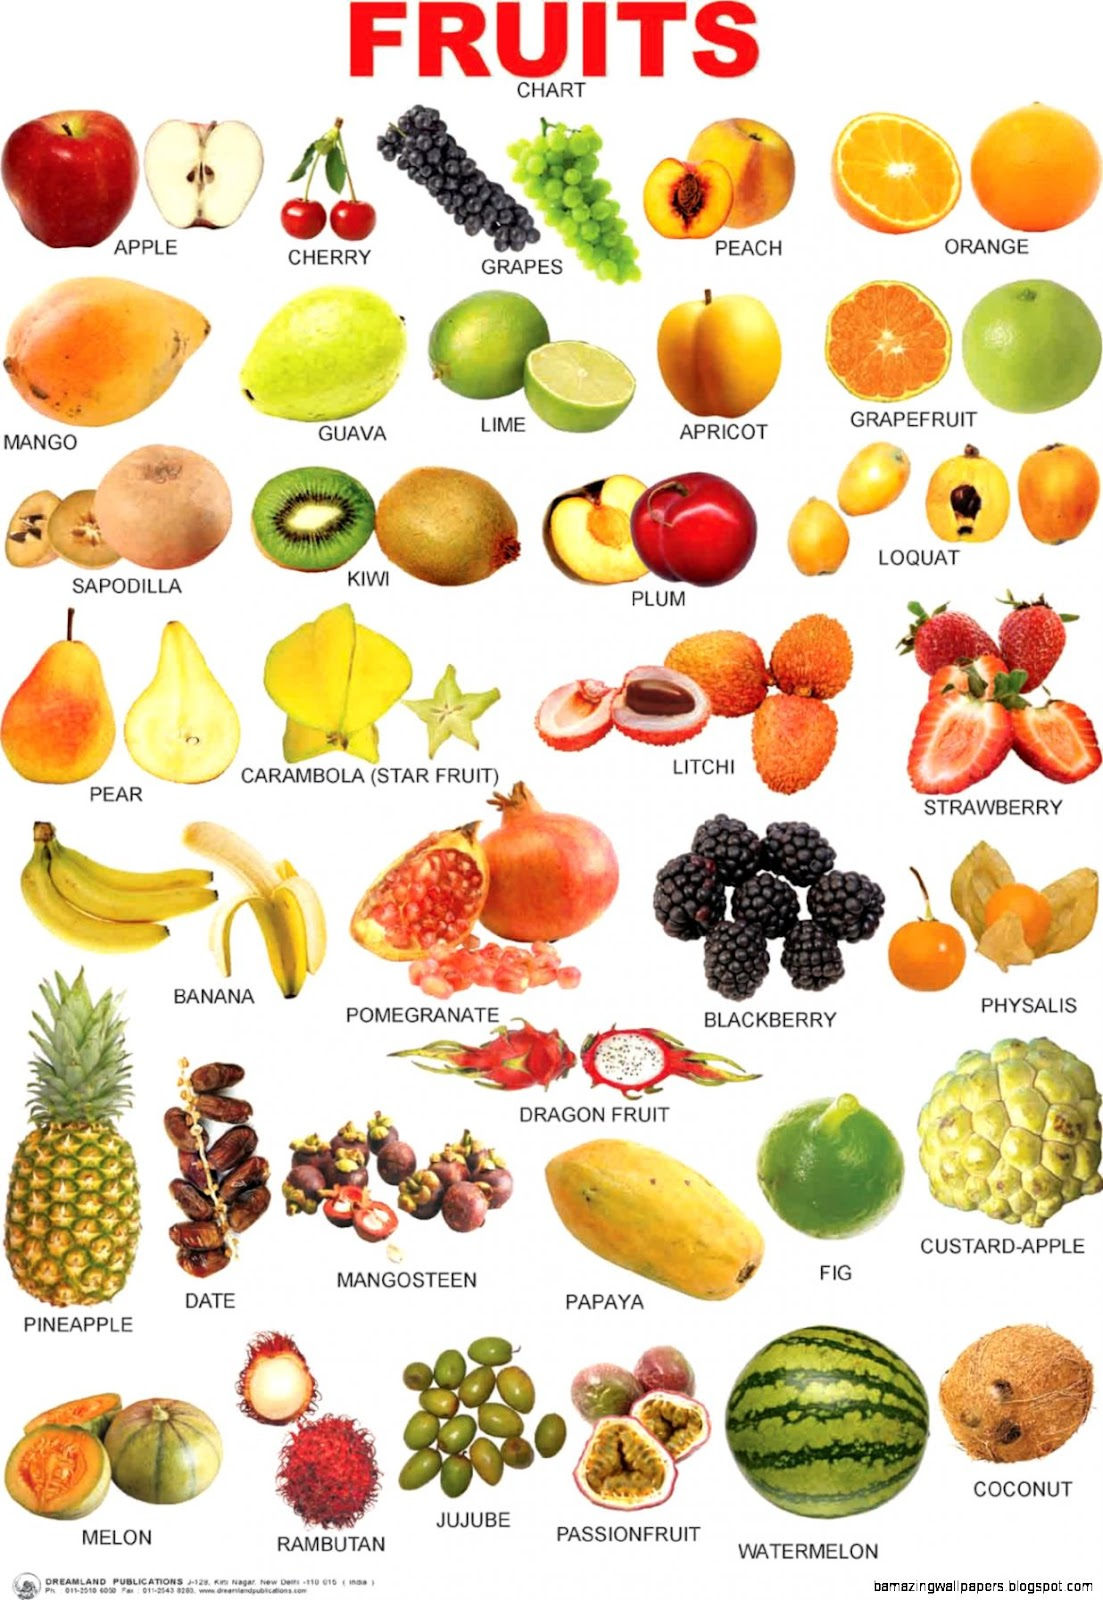 Name All Fruits and Vegetables